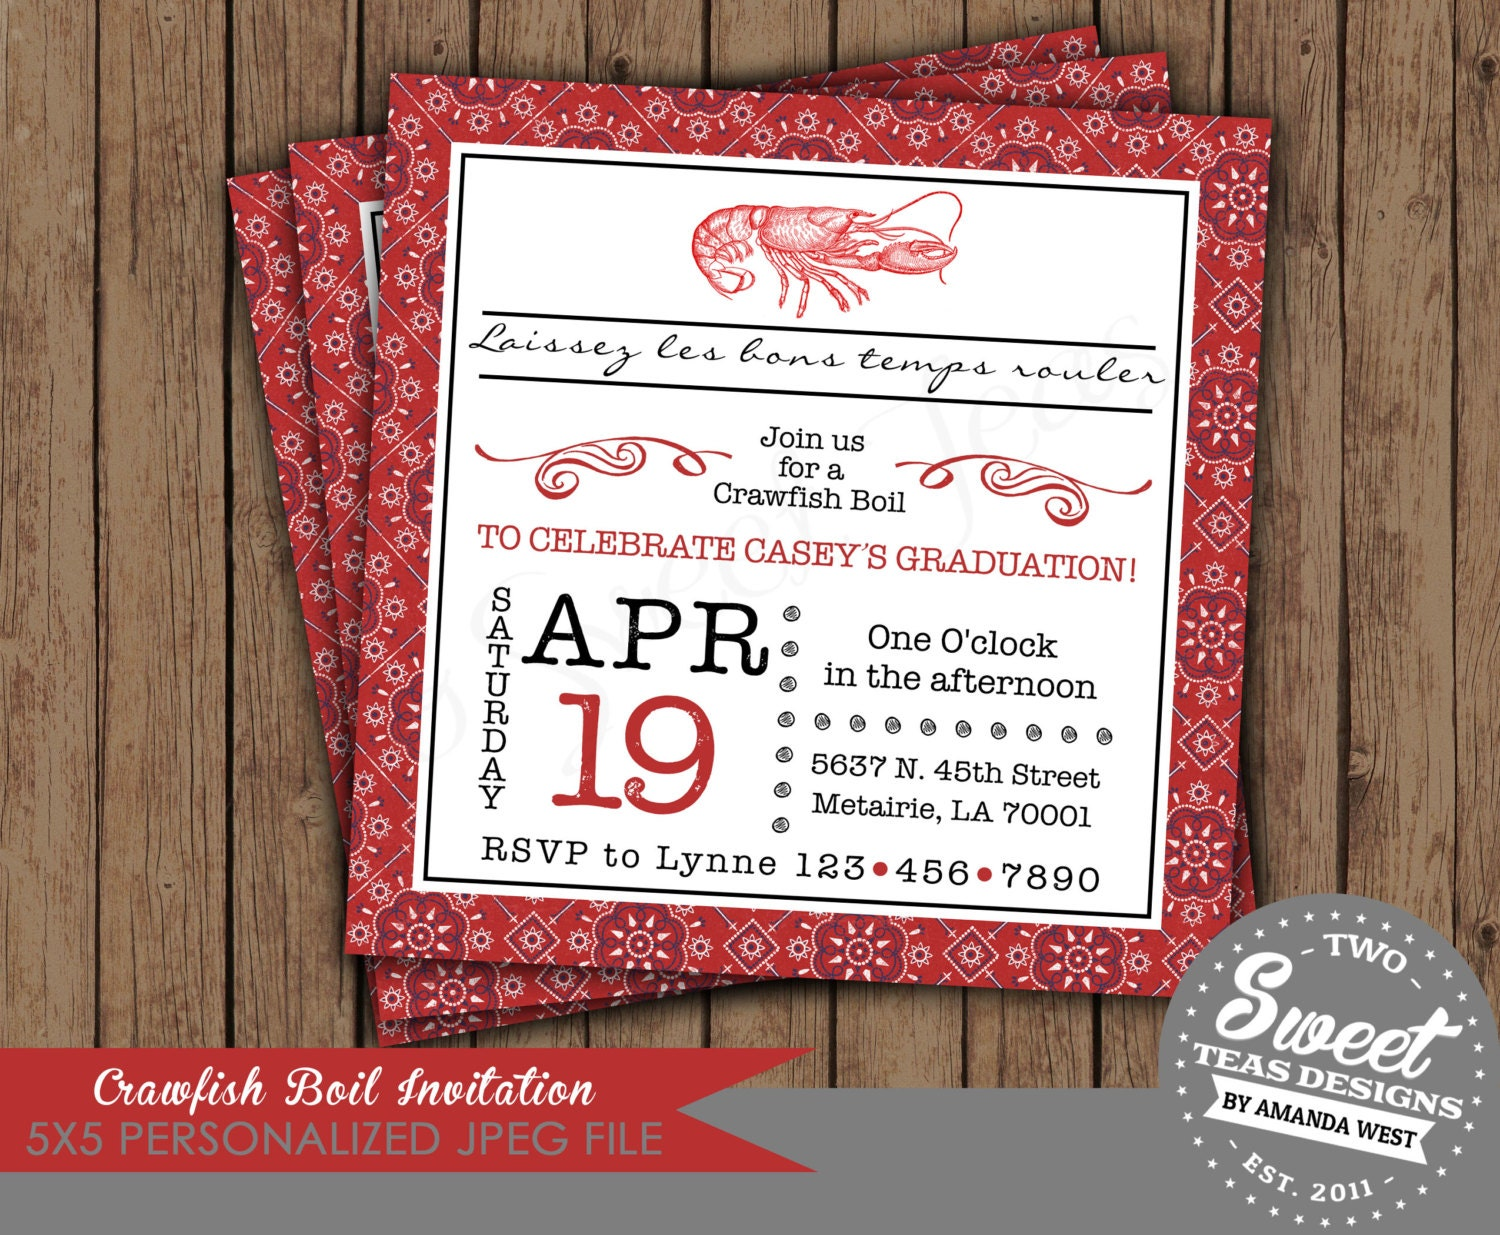 Crawfish Boil Invitation Birthday Party Couple By 2sweetteas